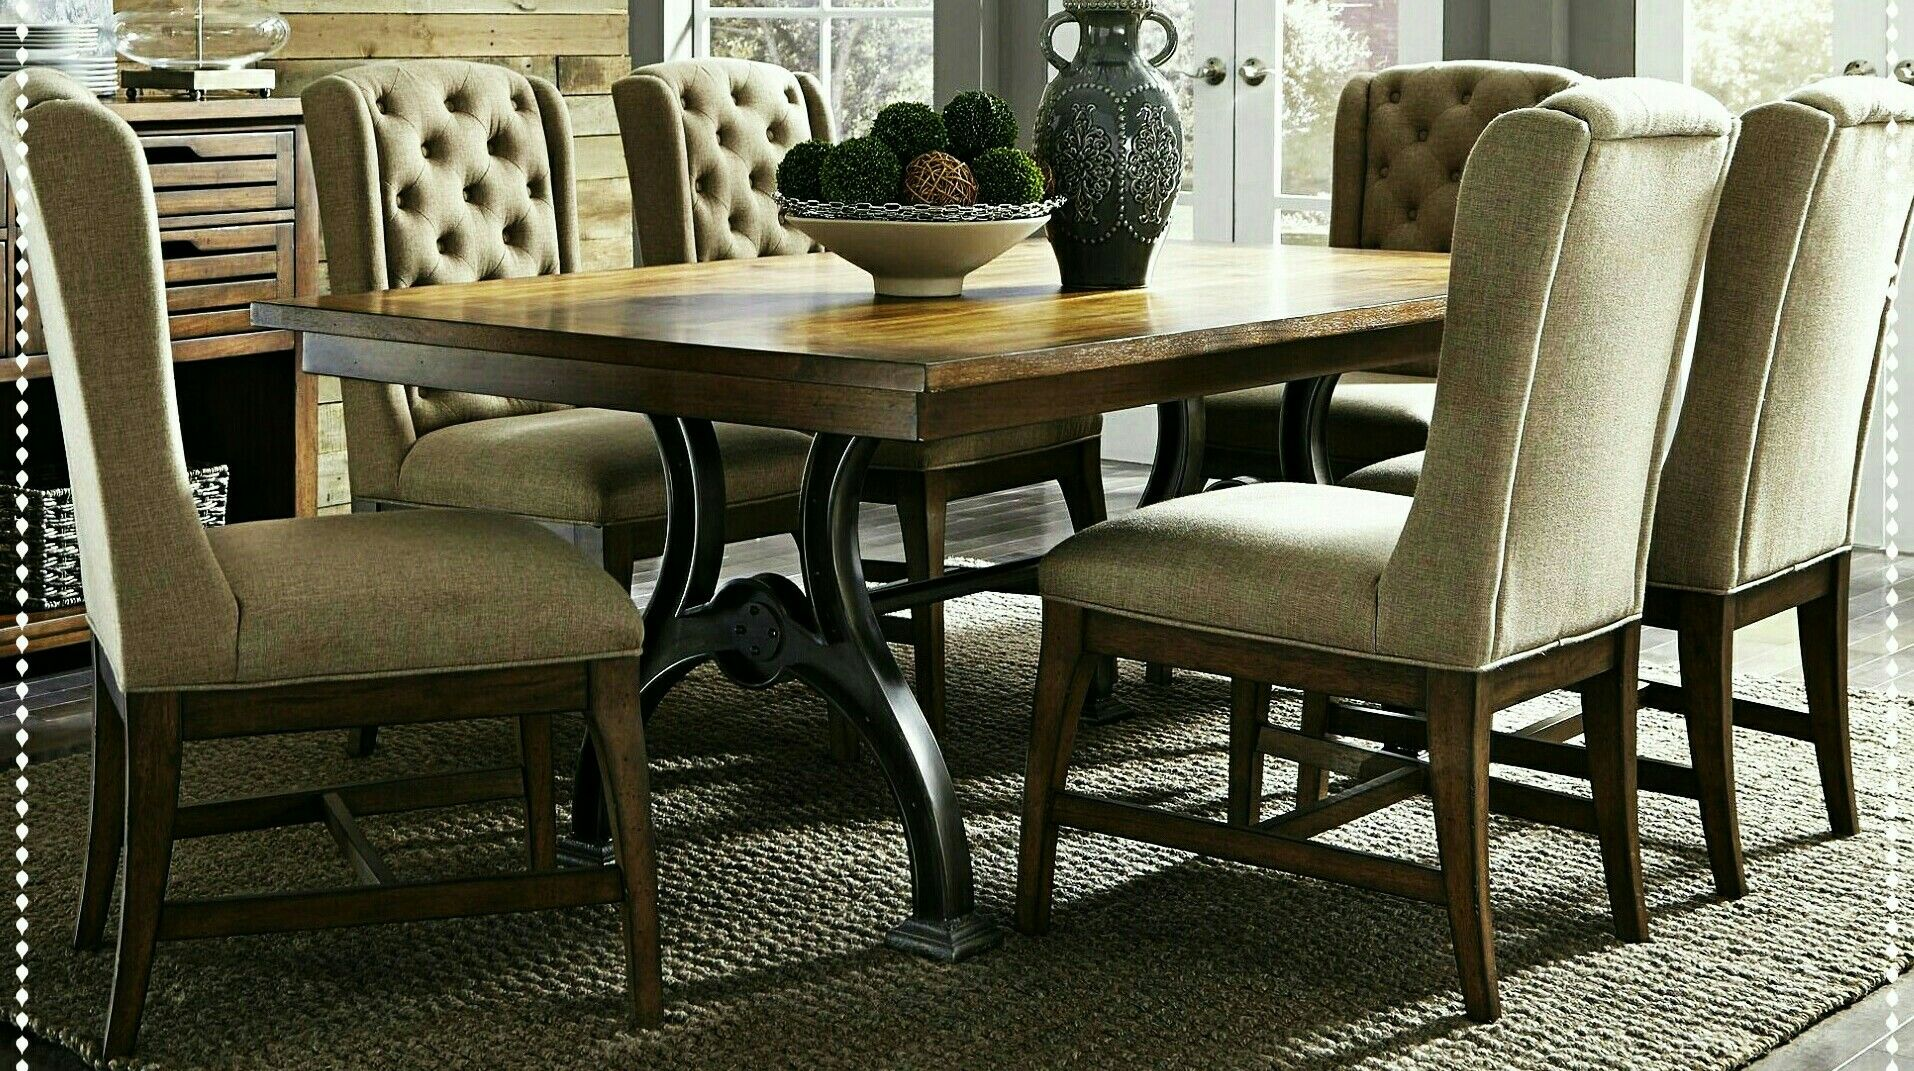 Commercial Dining Room Furniture Inspiration Americandesihnfurniturr The Tredegar French Industrial Table 2018